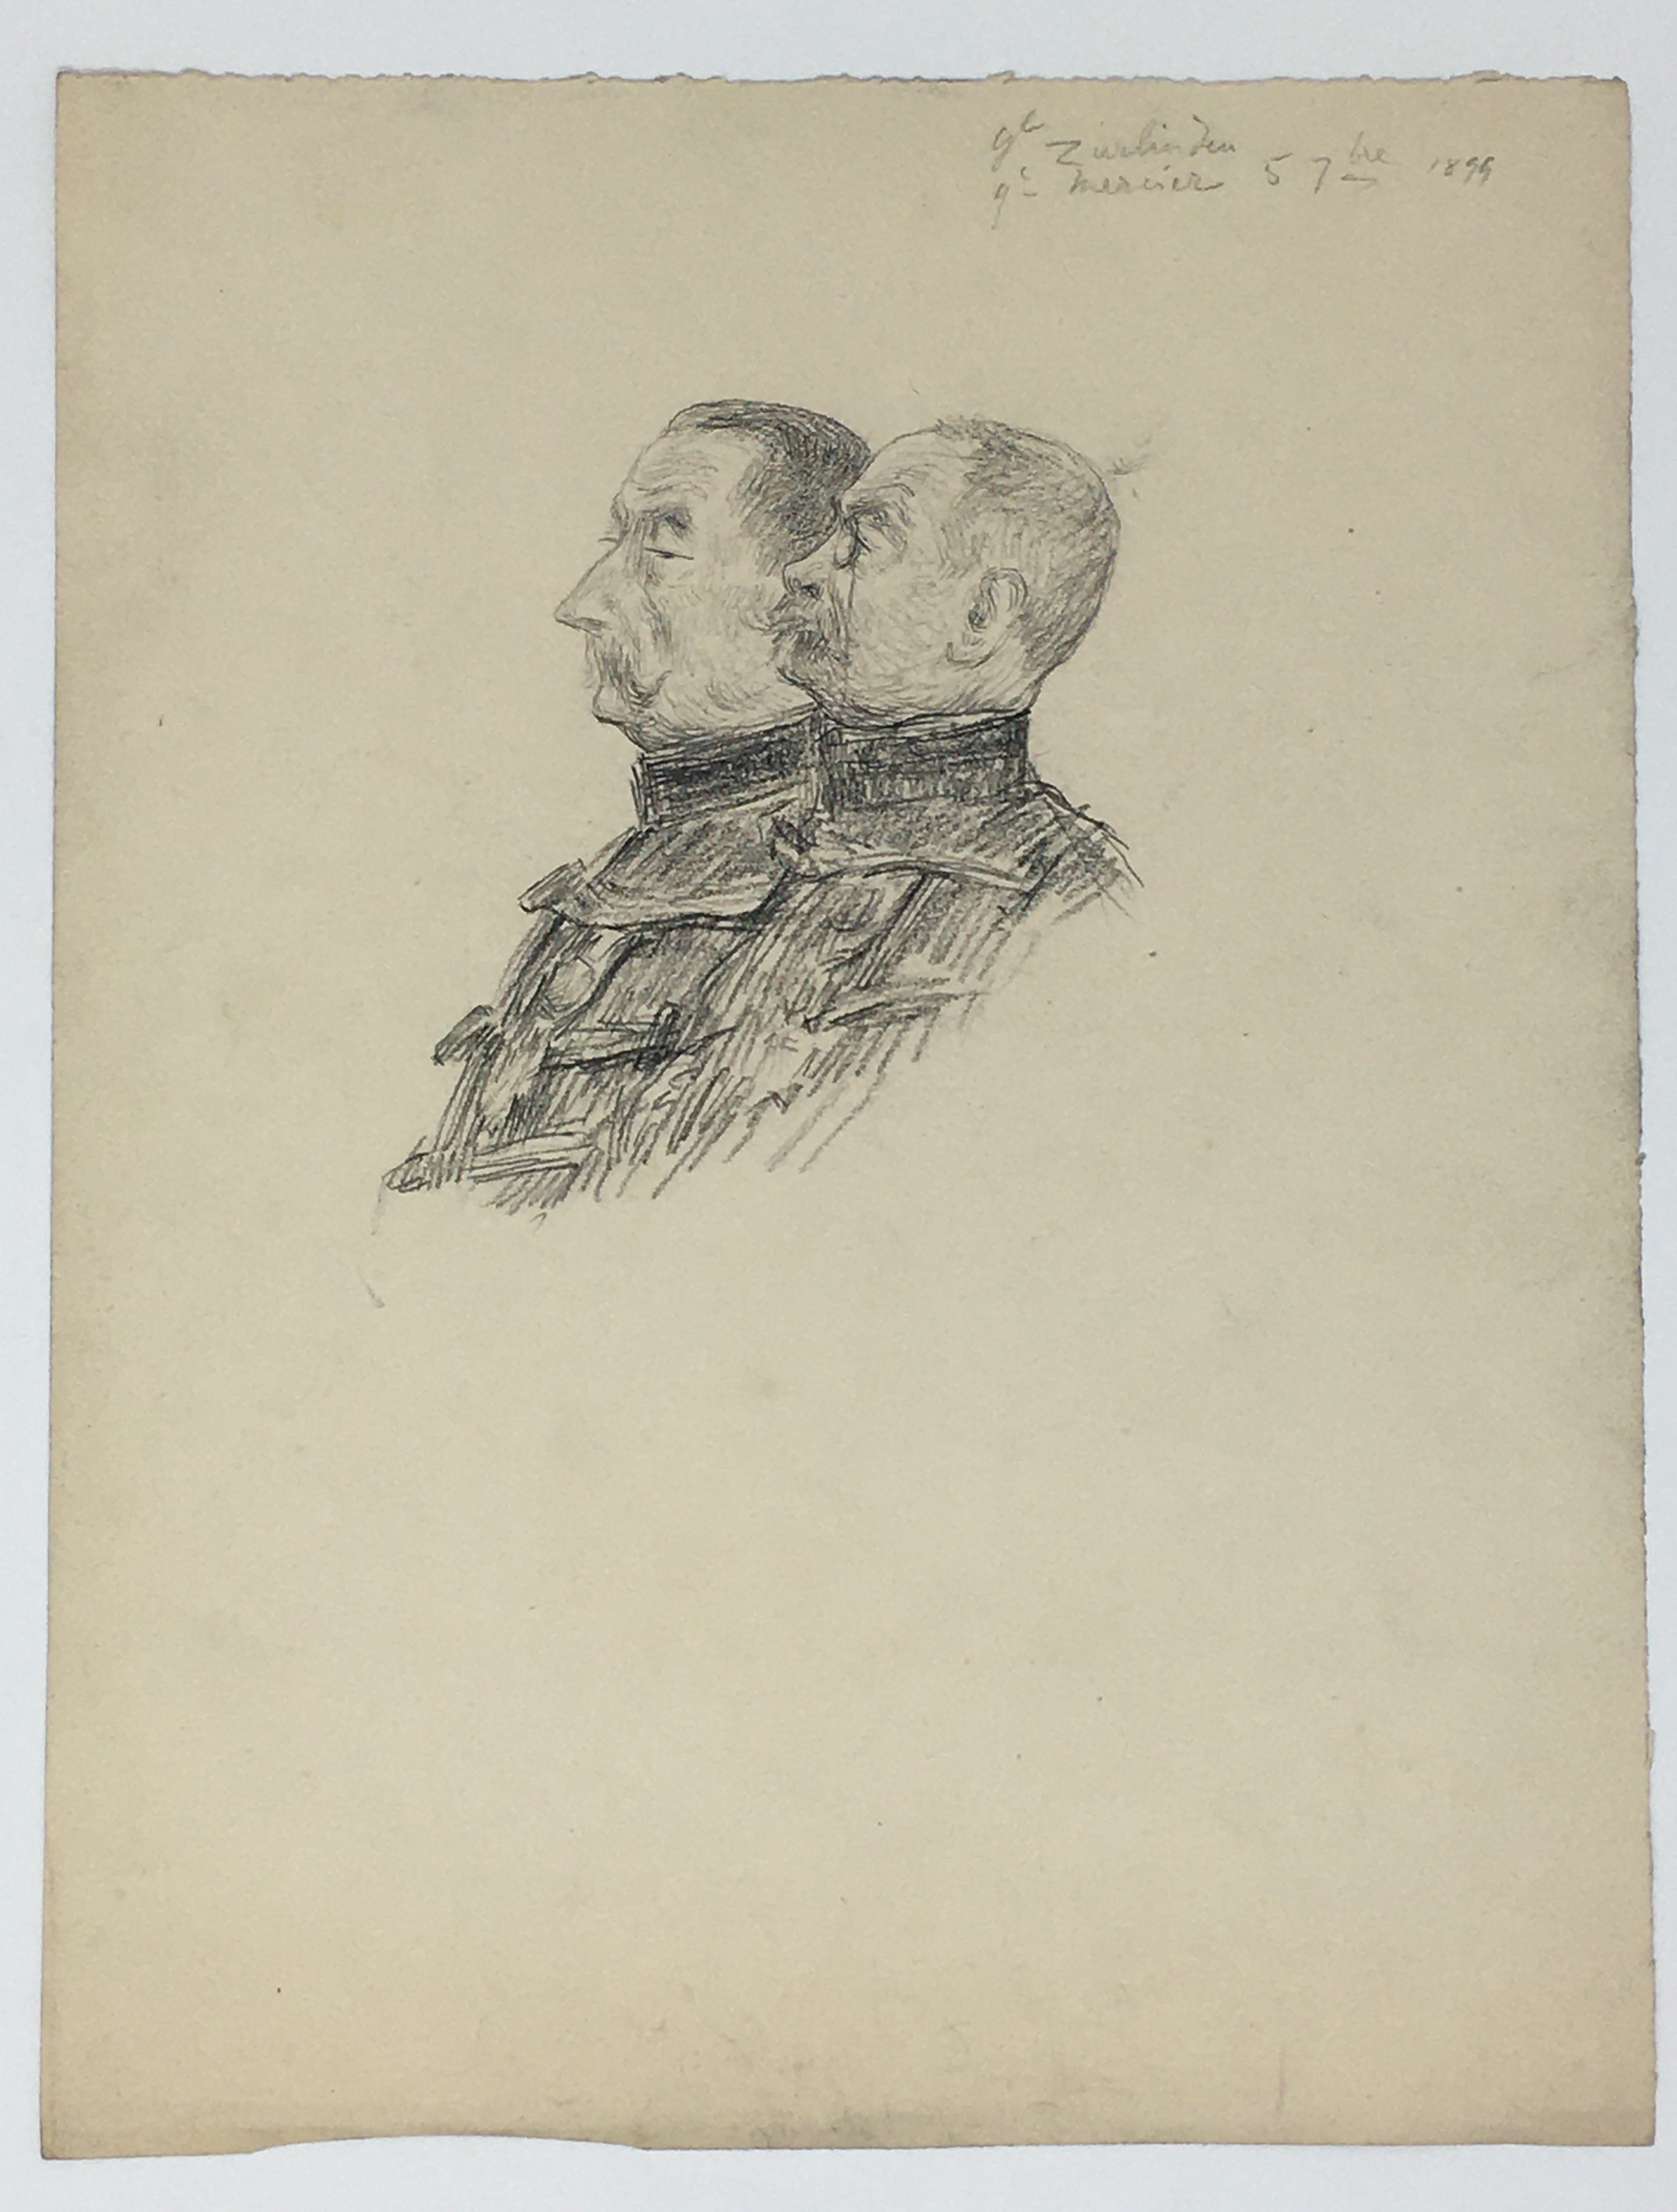 J'Accuse Newspaper, Emile Zola Quote, Signed Dreyfus Portrait, Rare Trial Drawings & Schwartzkoppen - Image 66 of 74